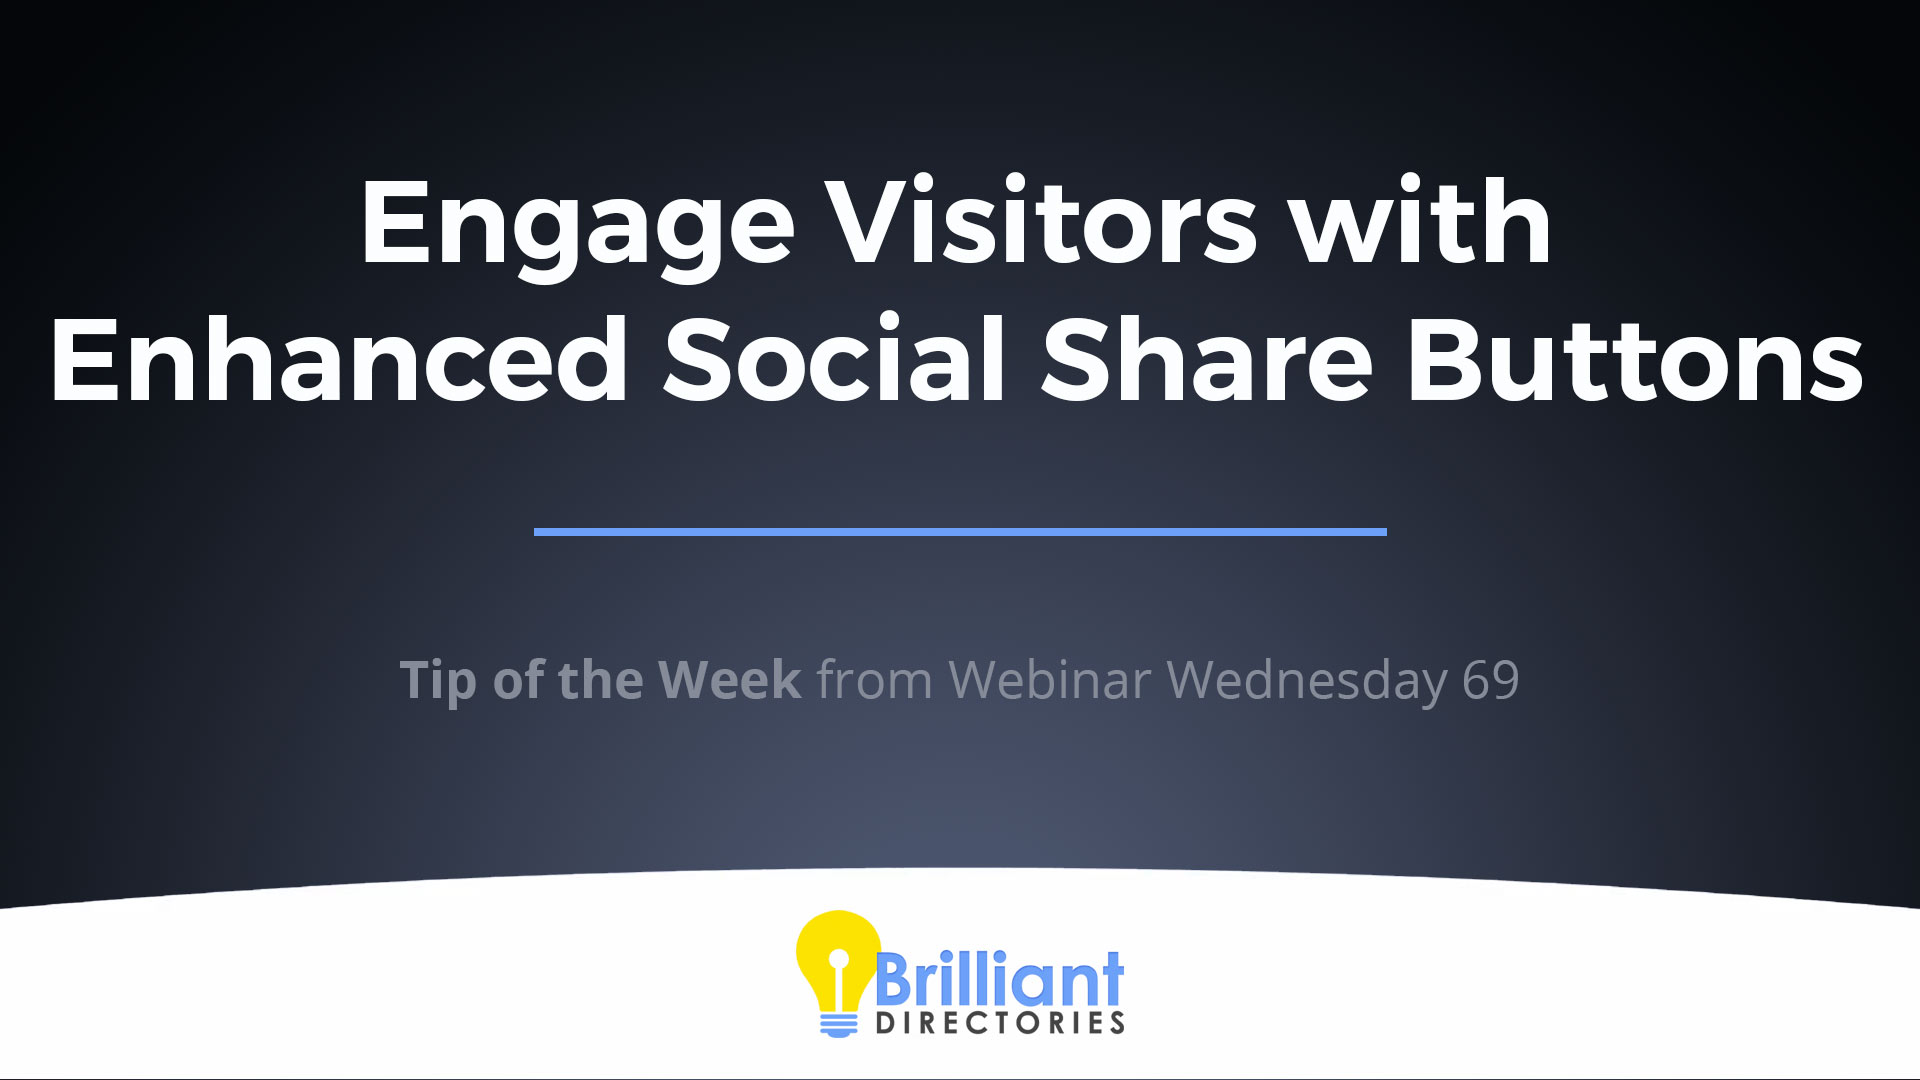 https://www.brilliantdirectories.com/blog/engage-website-visitors-with-enhanced-social-share-buttons